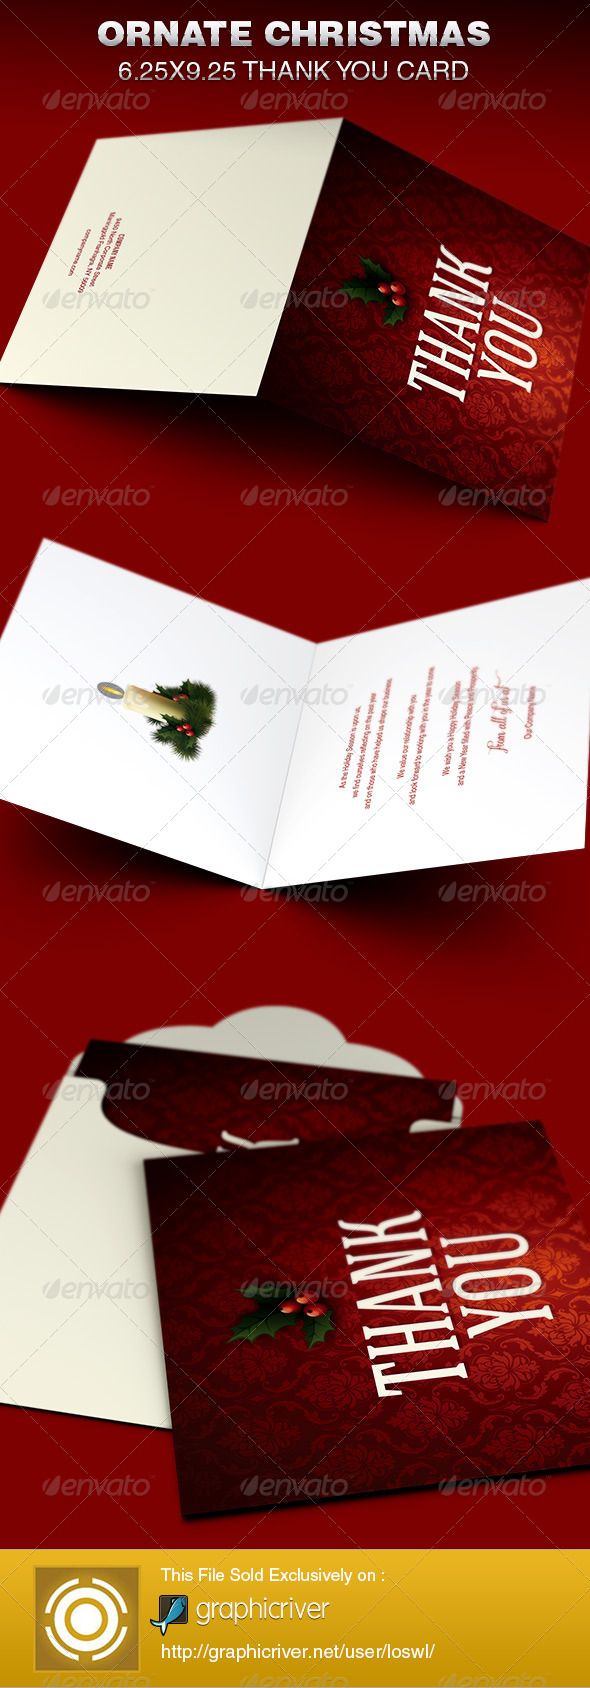 GraphicRiver Ornate Christmas Thank You Card Template 6353945